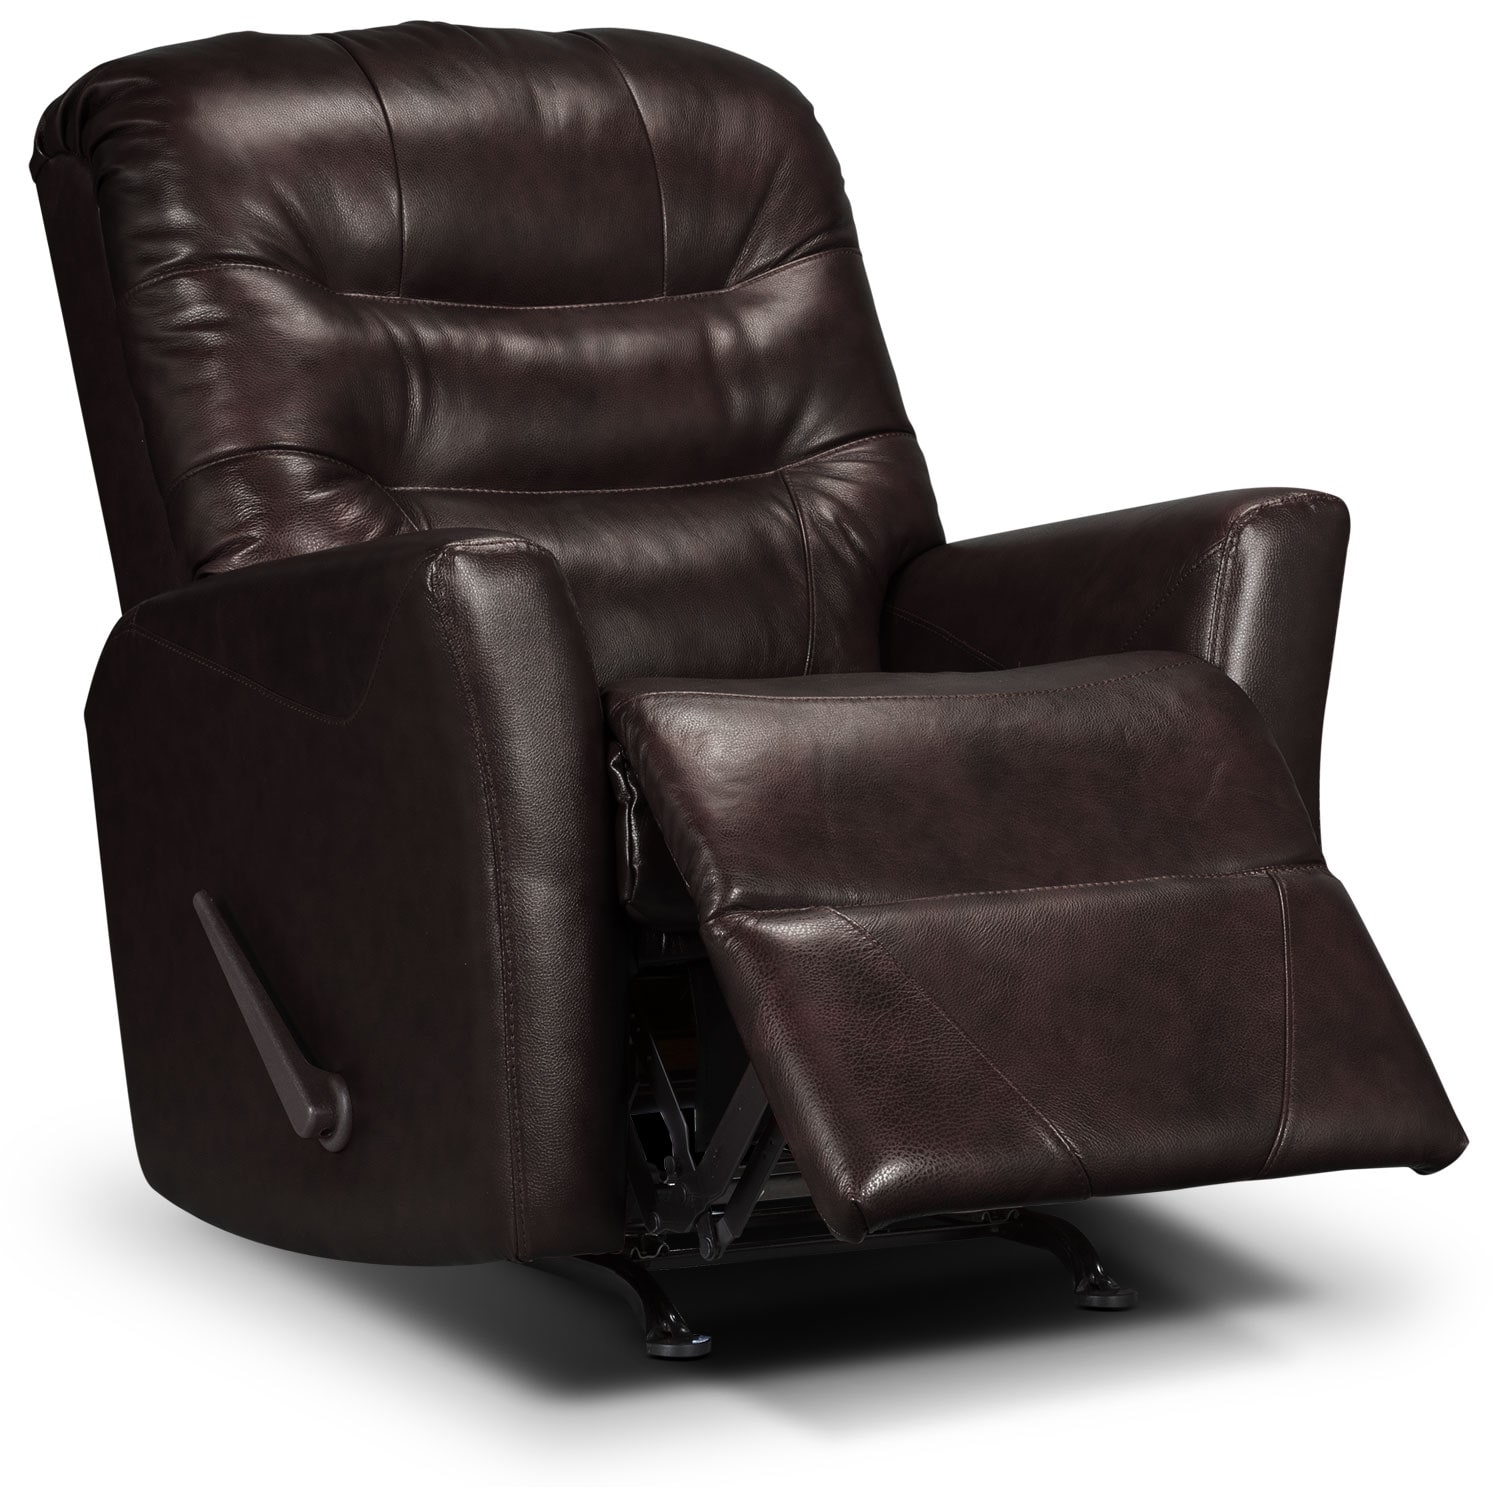 Designed2B Recliner 4560 Bonded Leather Rocker Recliner - Chocolate